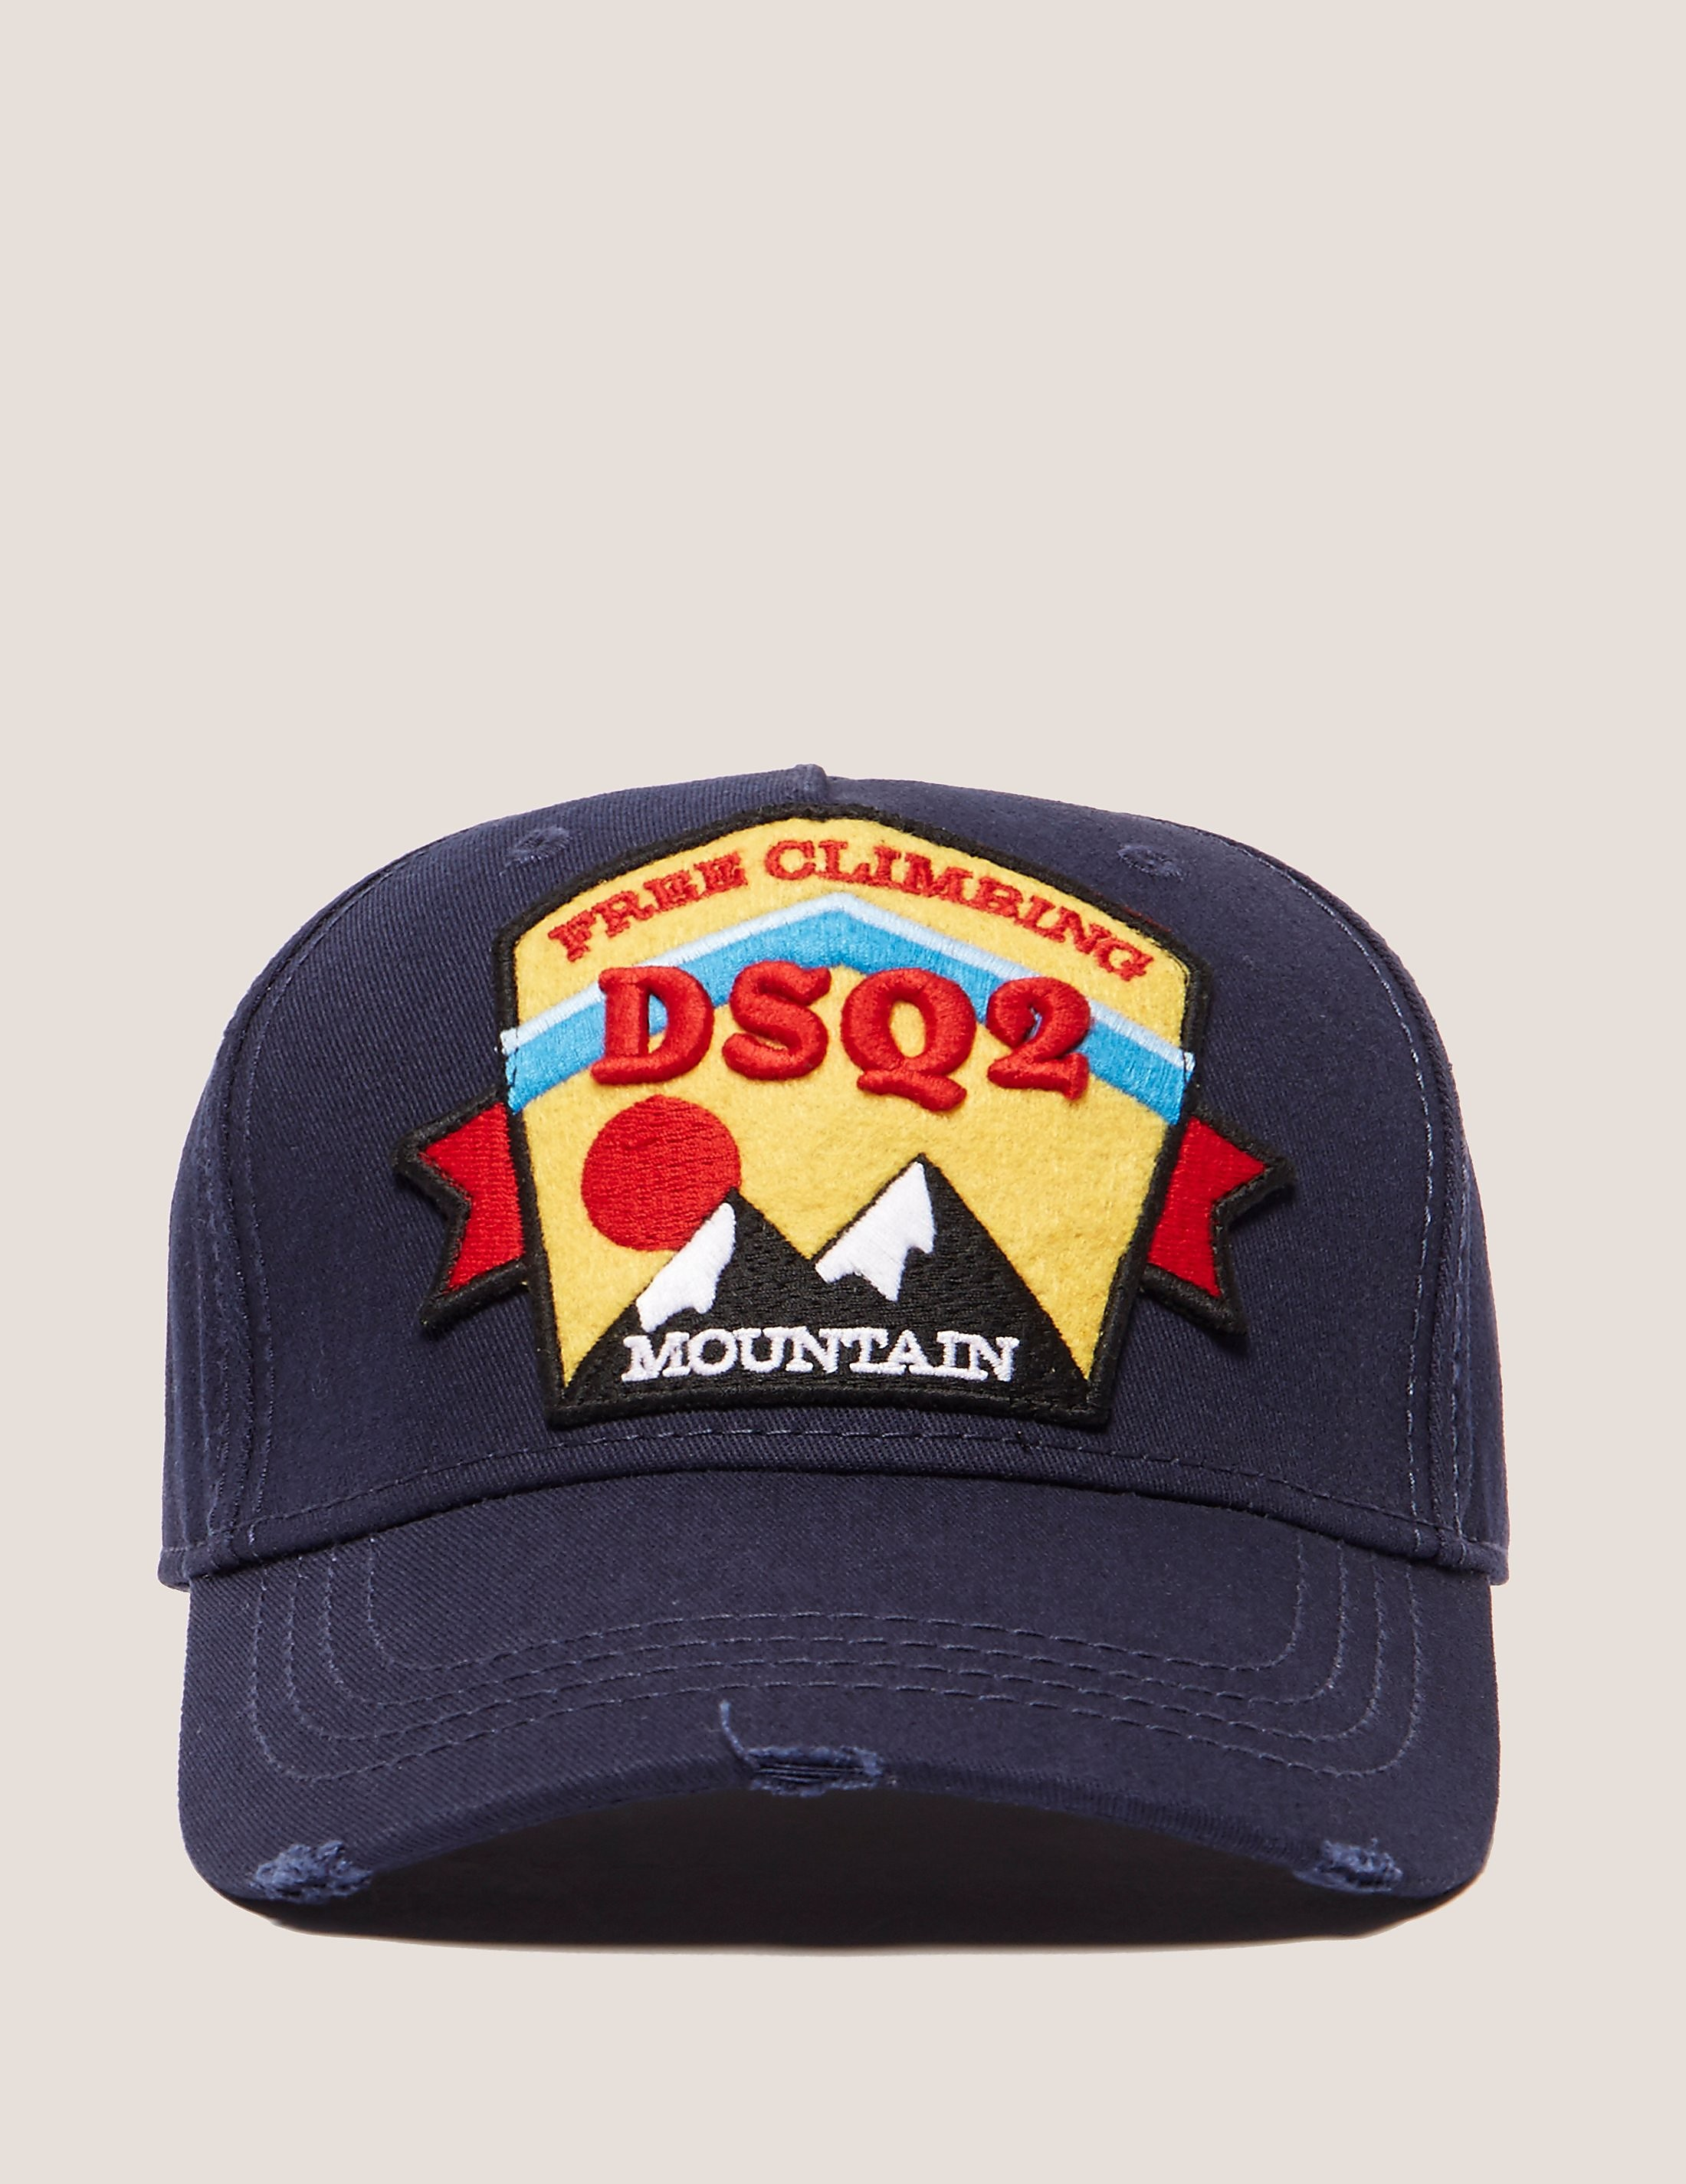 DSQUARED2 Mountain Cap